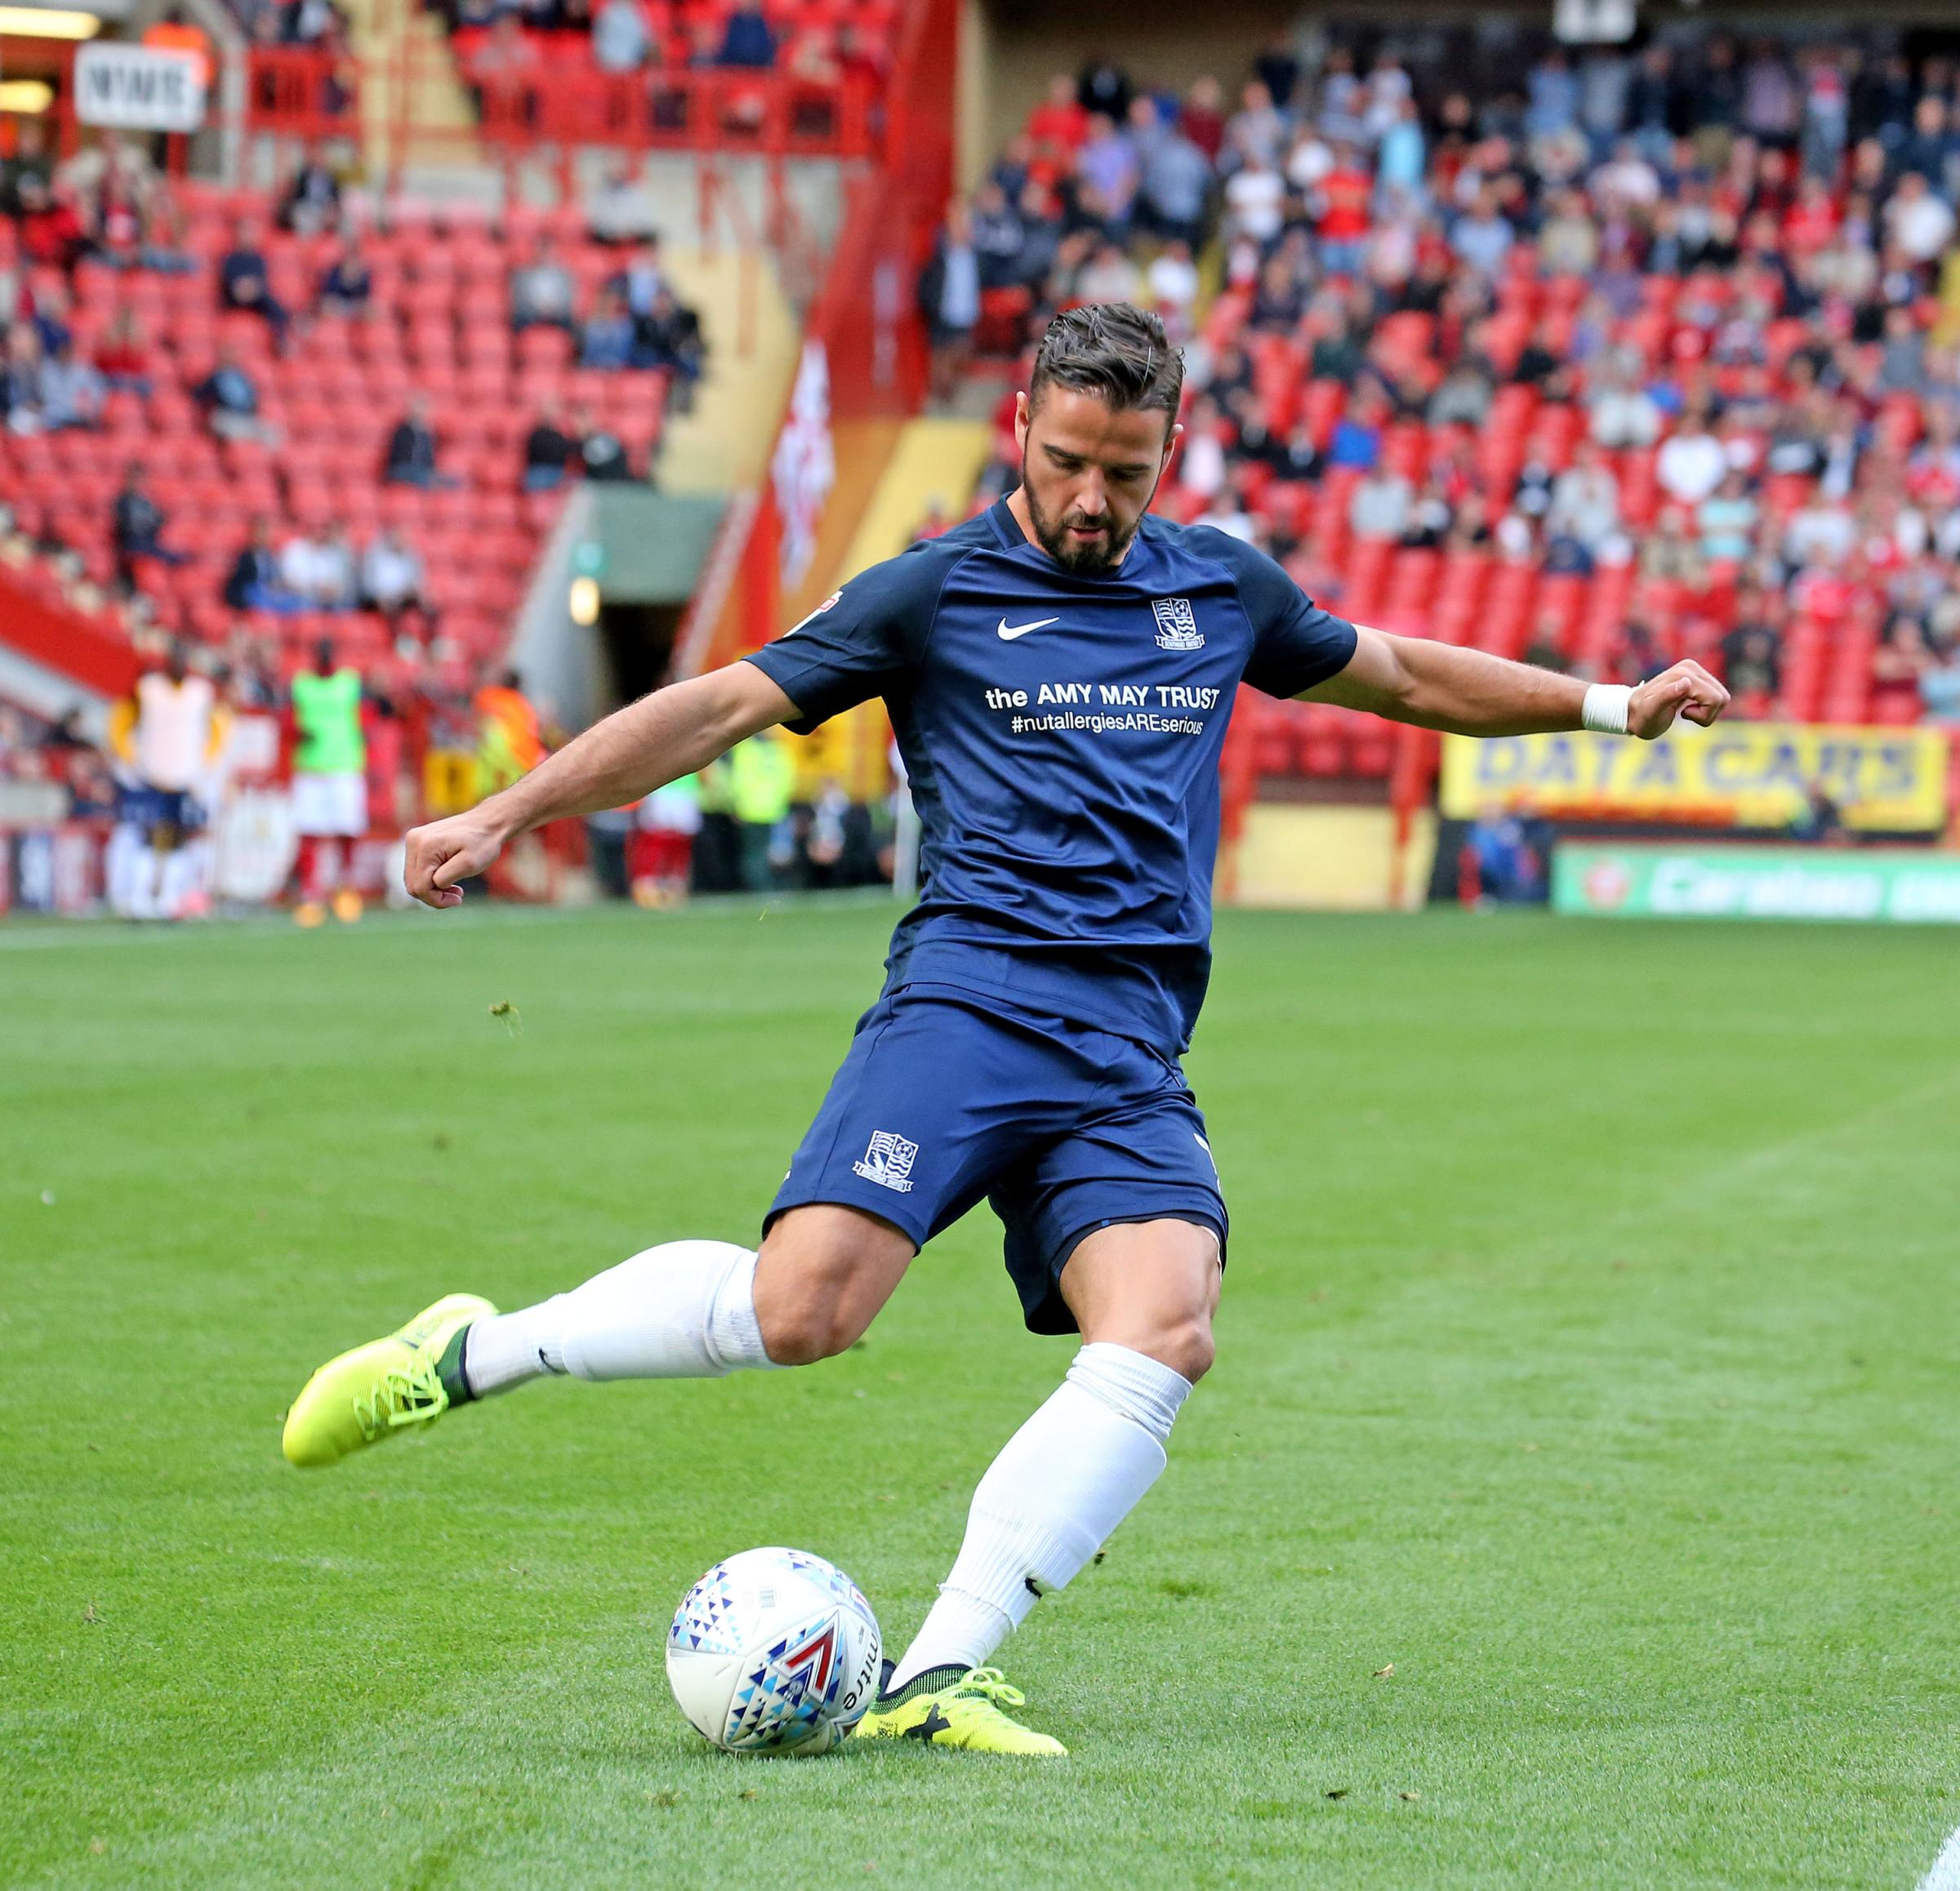 Determined to impress - Southend United winger Stephen McLaughlin